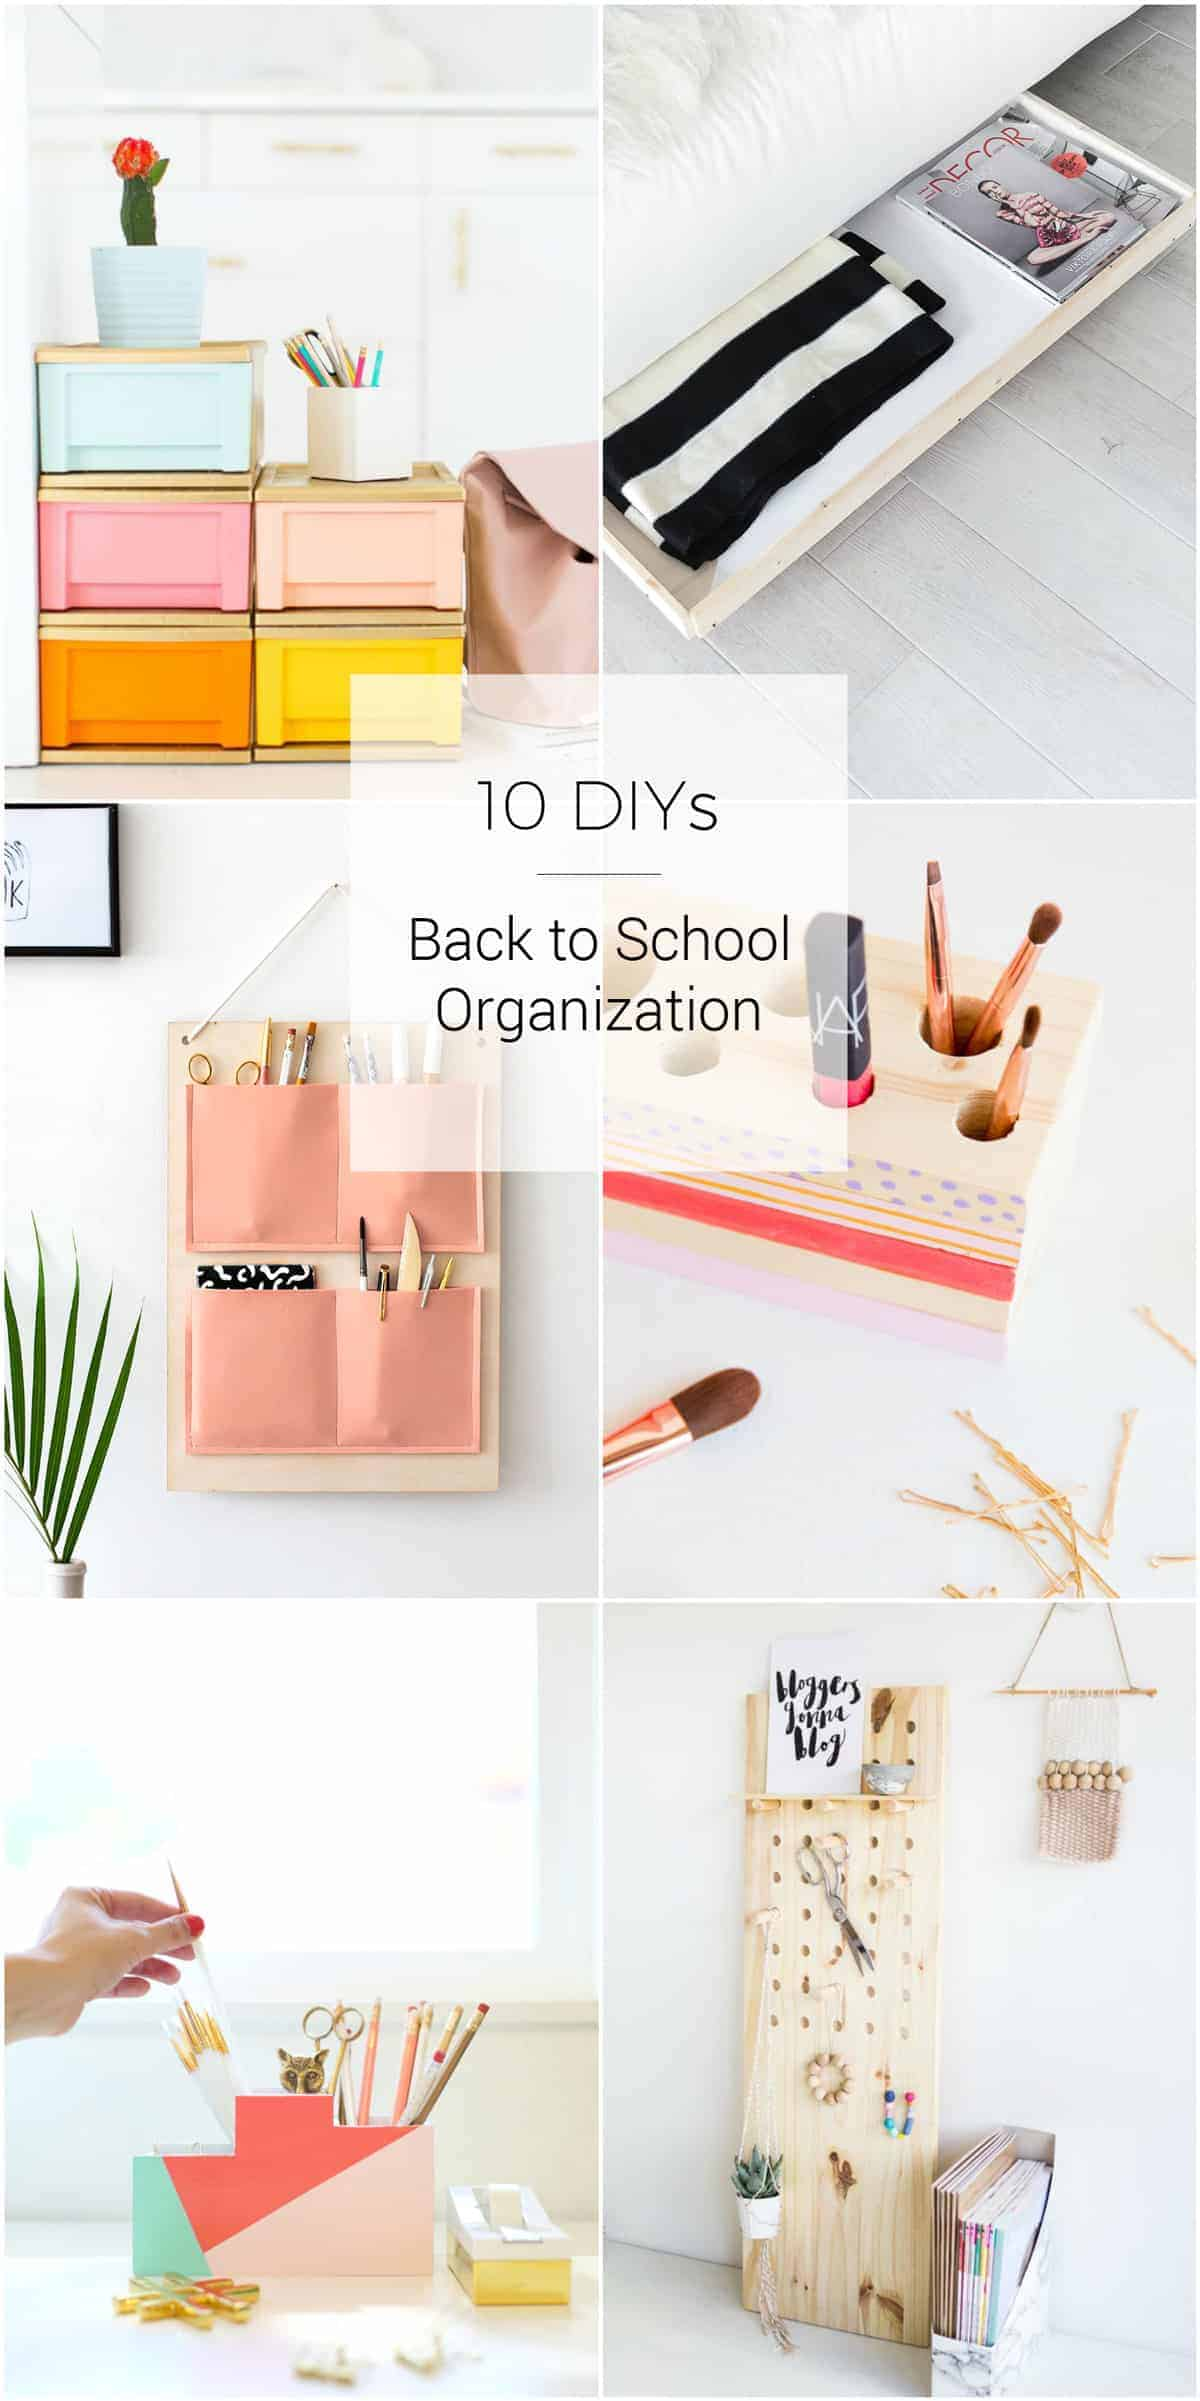 10 DIY projects for Back to school Organization